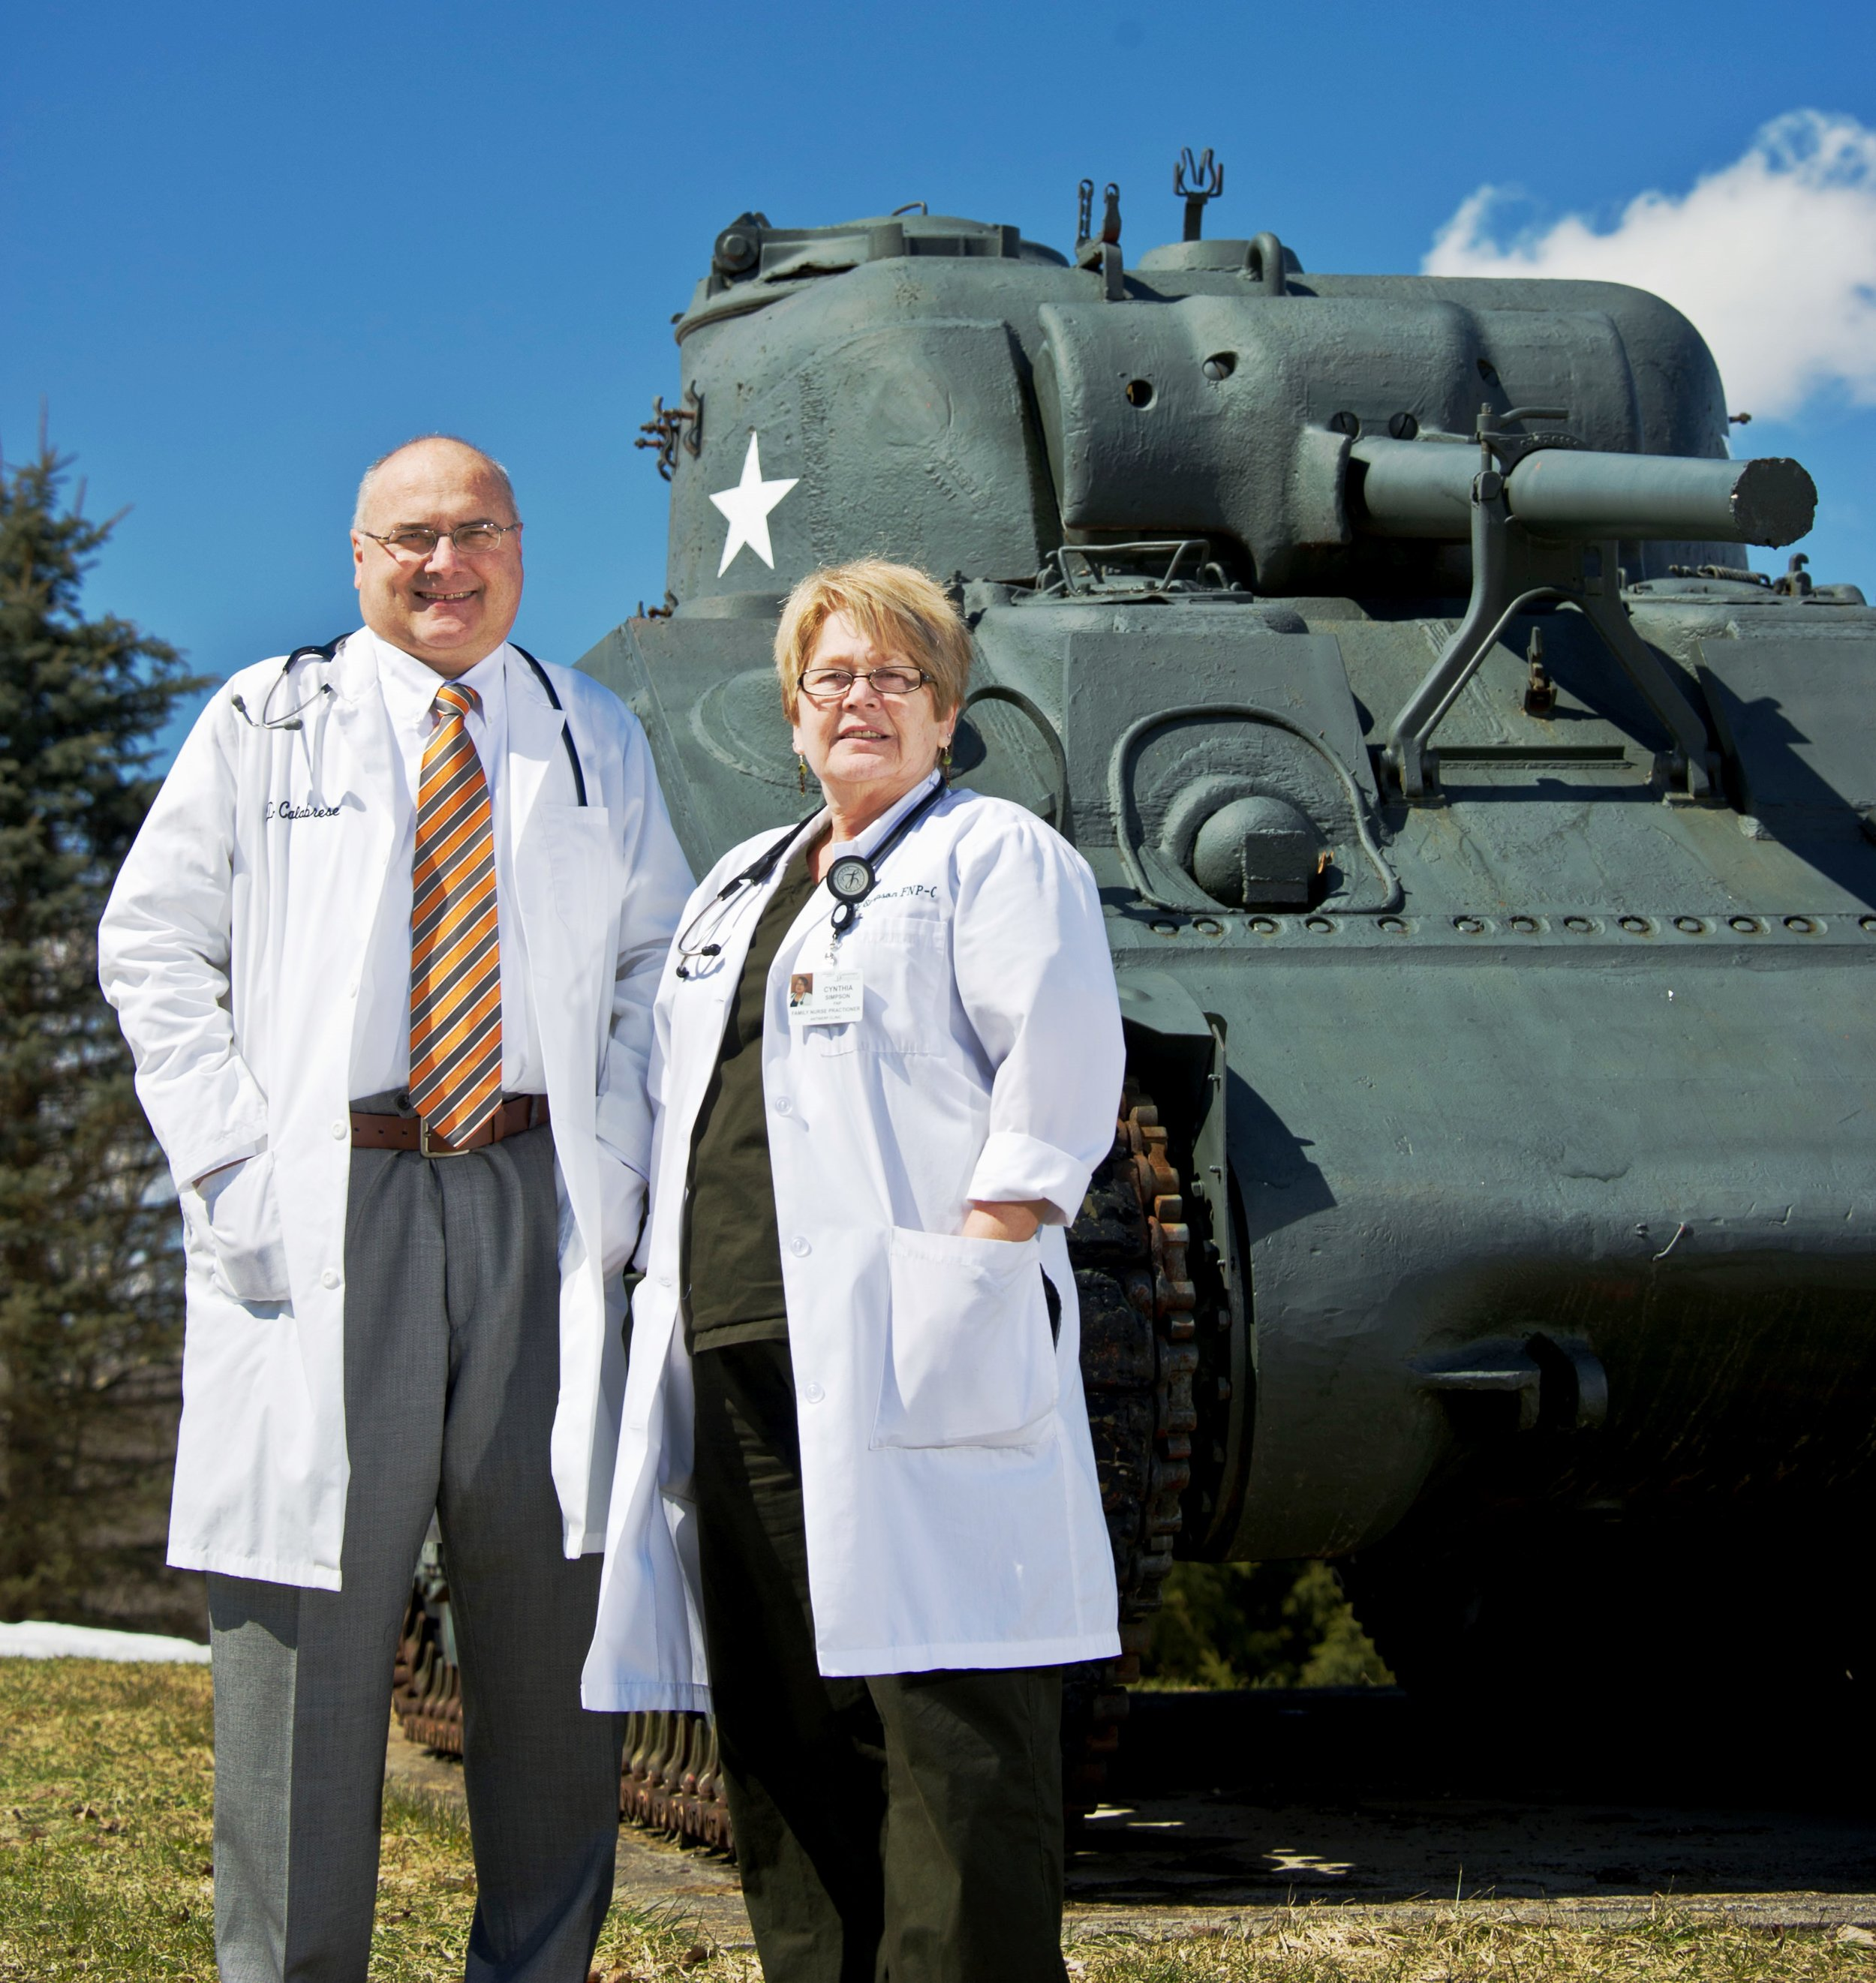 Gerald Calabrese, MD, and Cynthia Simpson, NP, in the Antwerp Village Square.